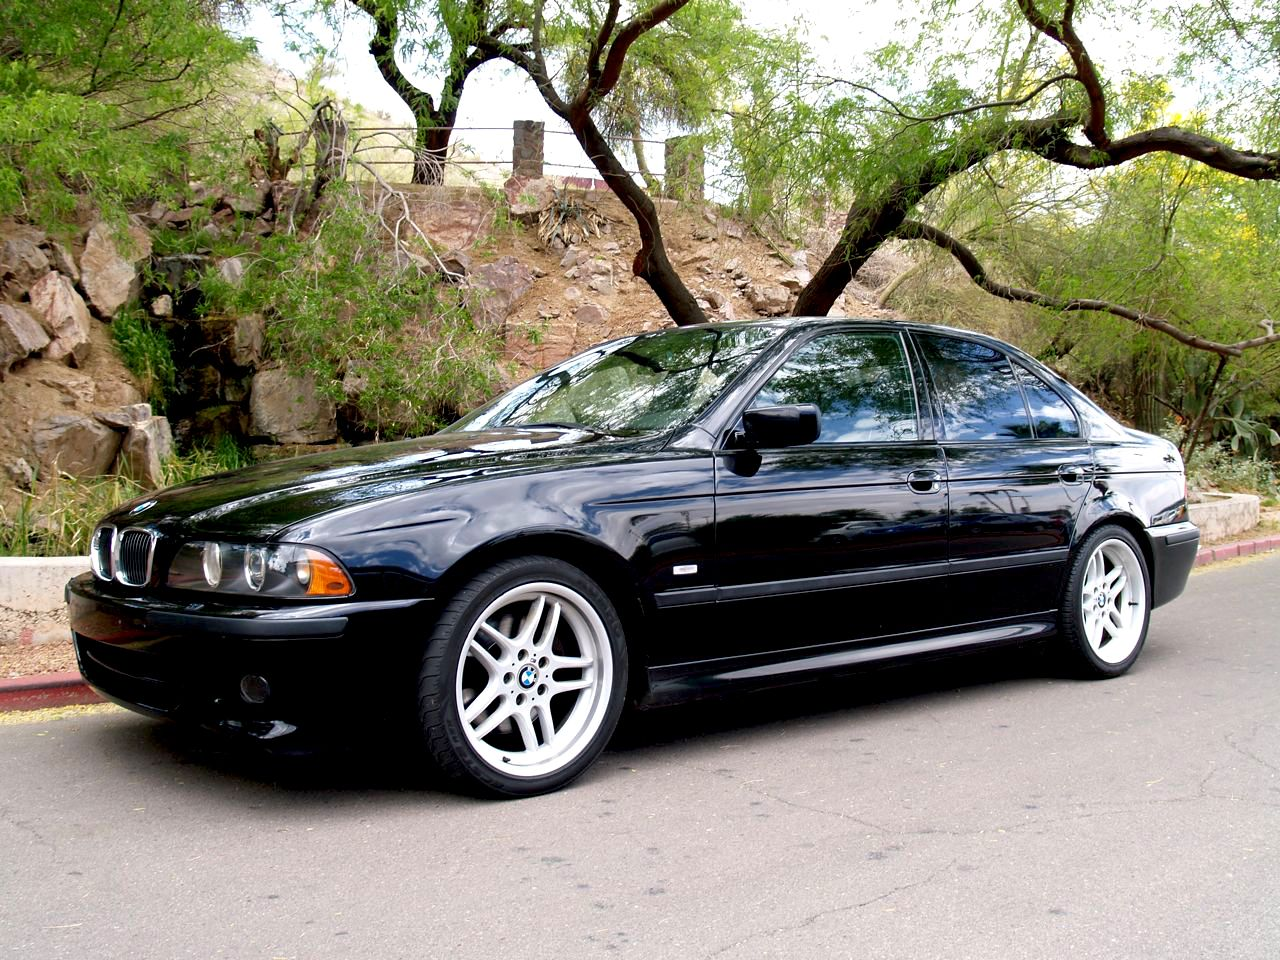 2003 BMW 540i M Sport--- had one of these beauties too!! | Cars ...